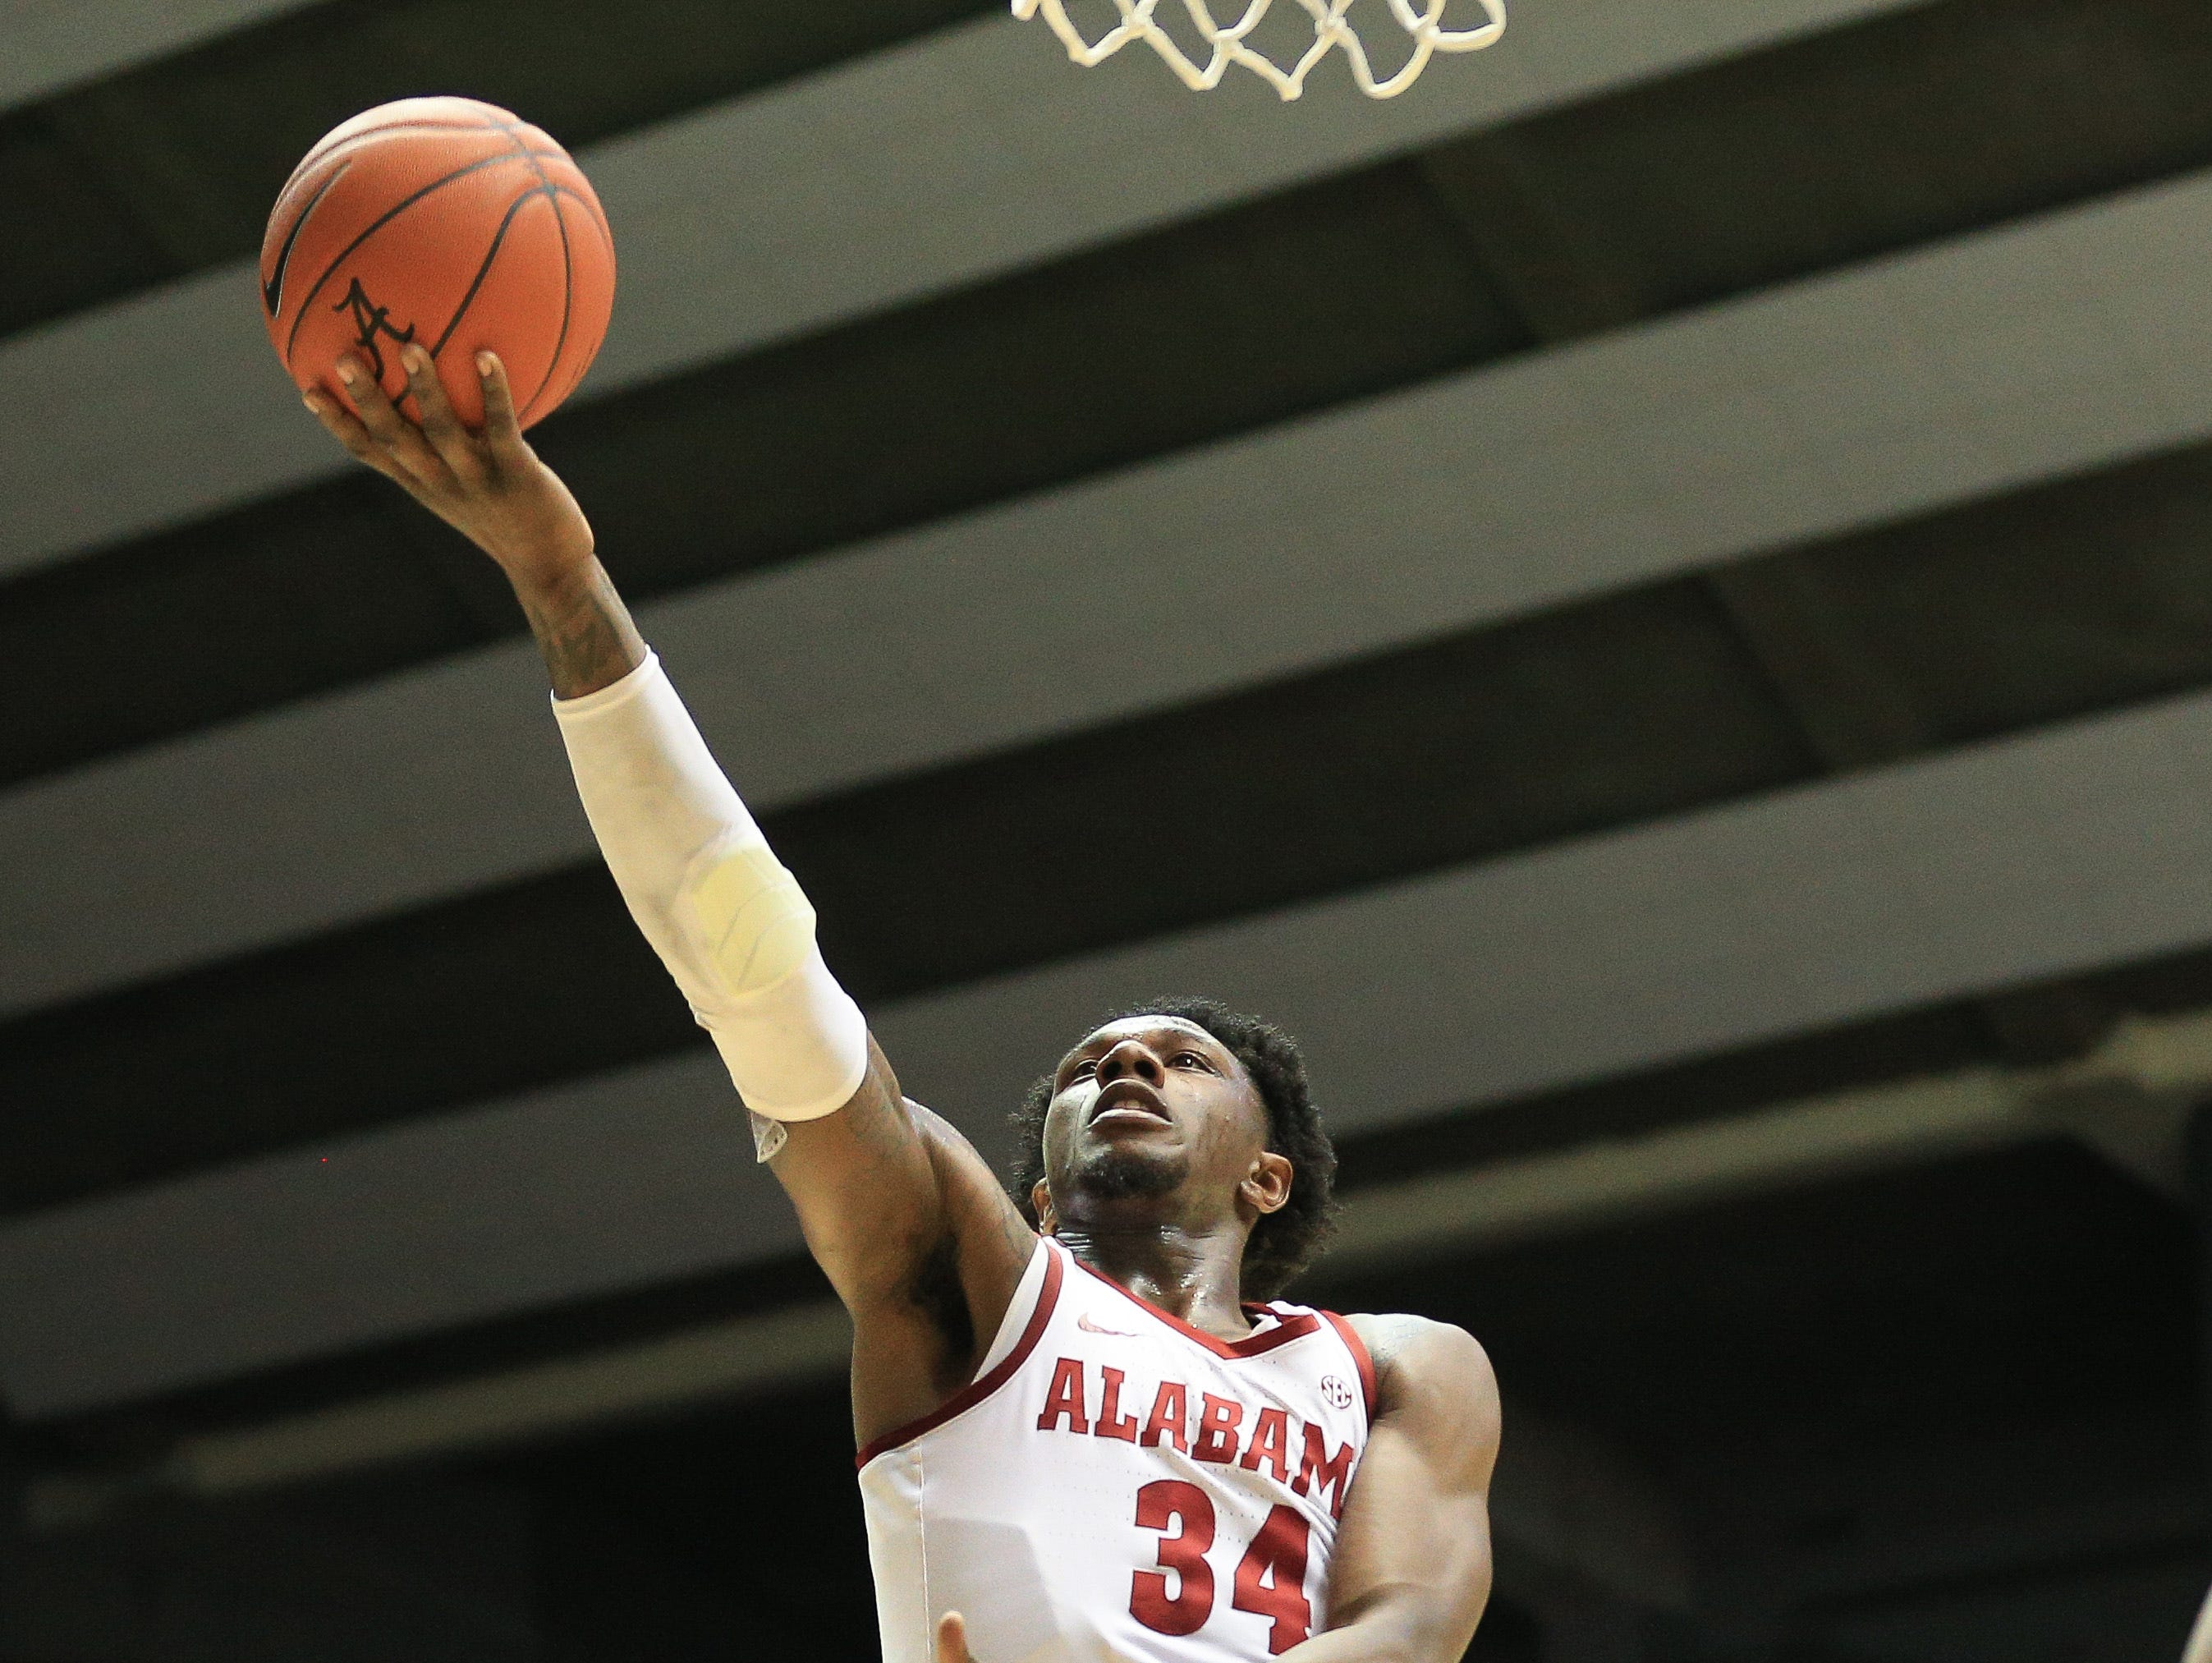 Feb 6, 2019; Tuscaloosa, AL, USA; Alabama Crimson Tide guard Tevin Mack (34) goes to the basket against Georgia Bulldogs during the second half at Coleman Coliseum. Mandatory Credit: Marvin Gentry-USA TODAY Sports